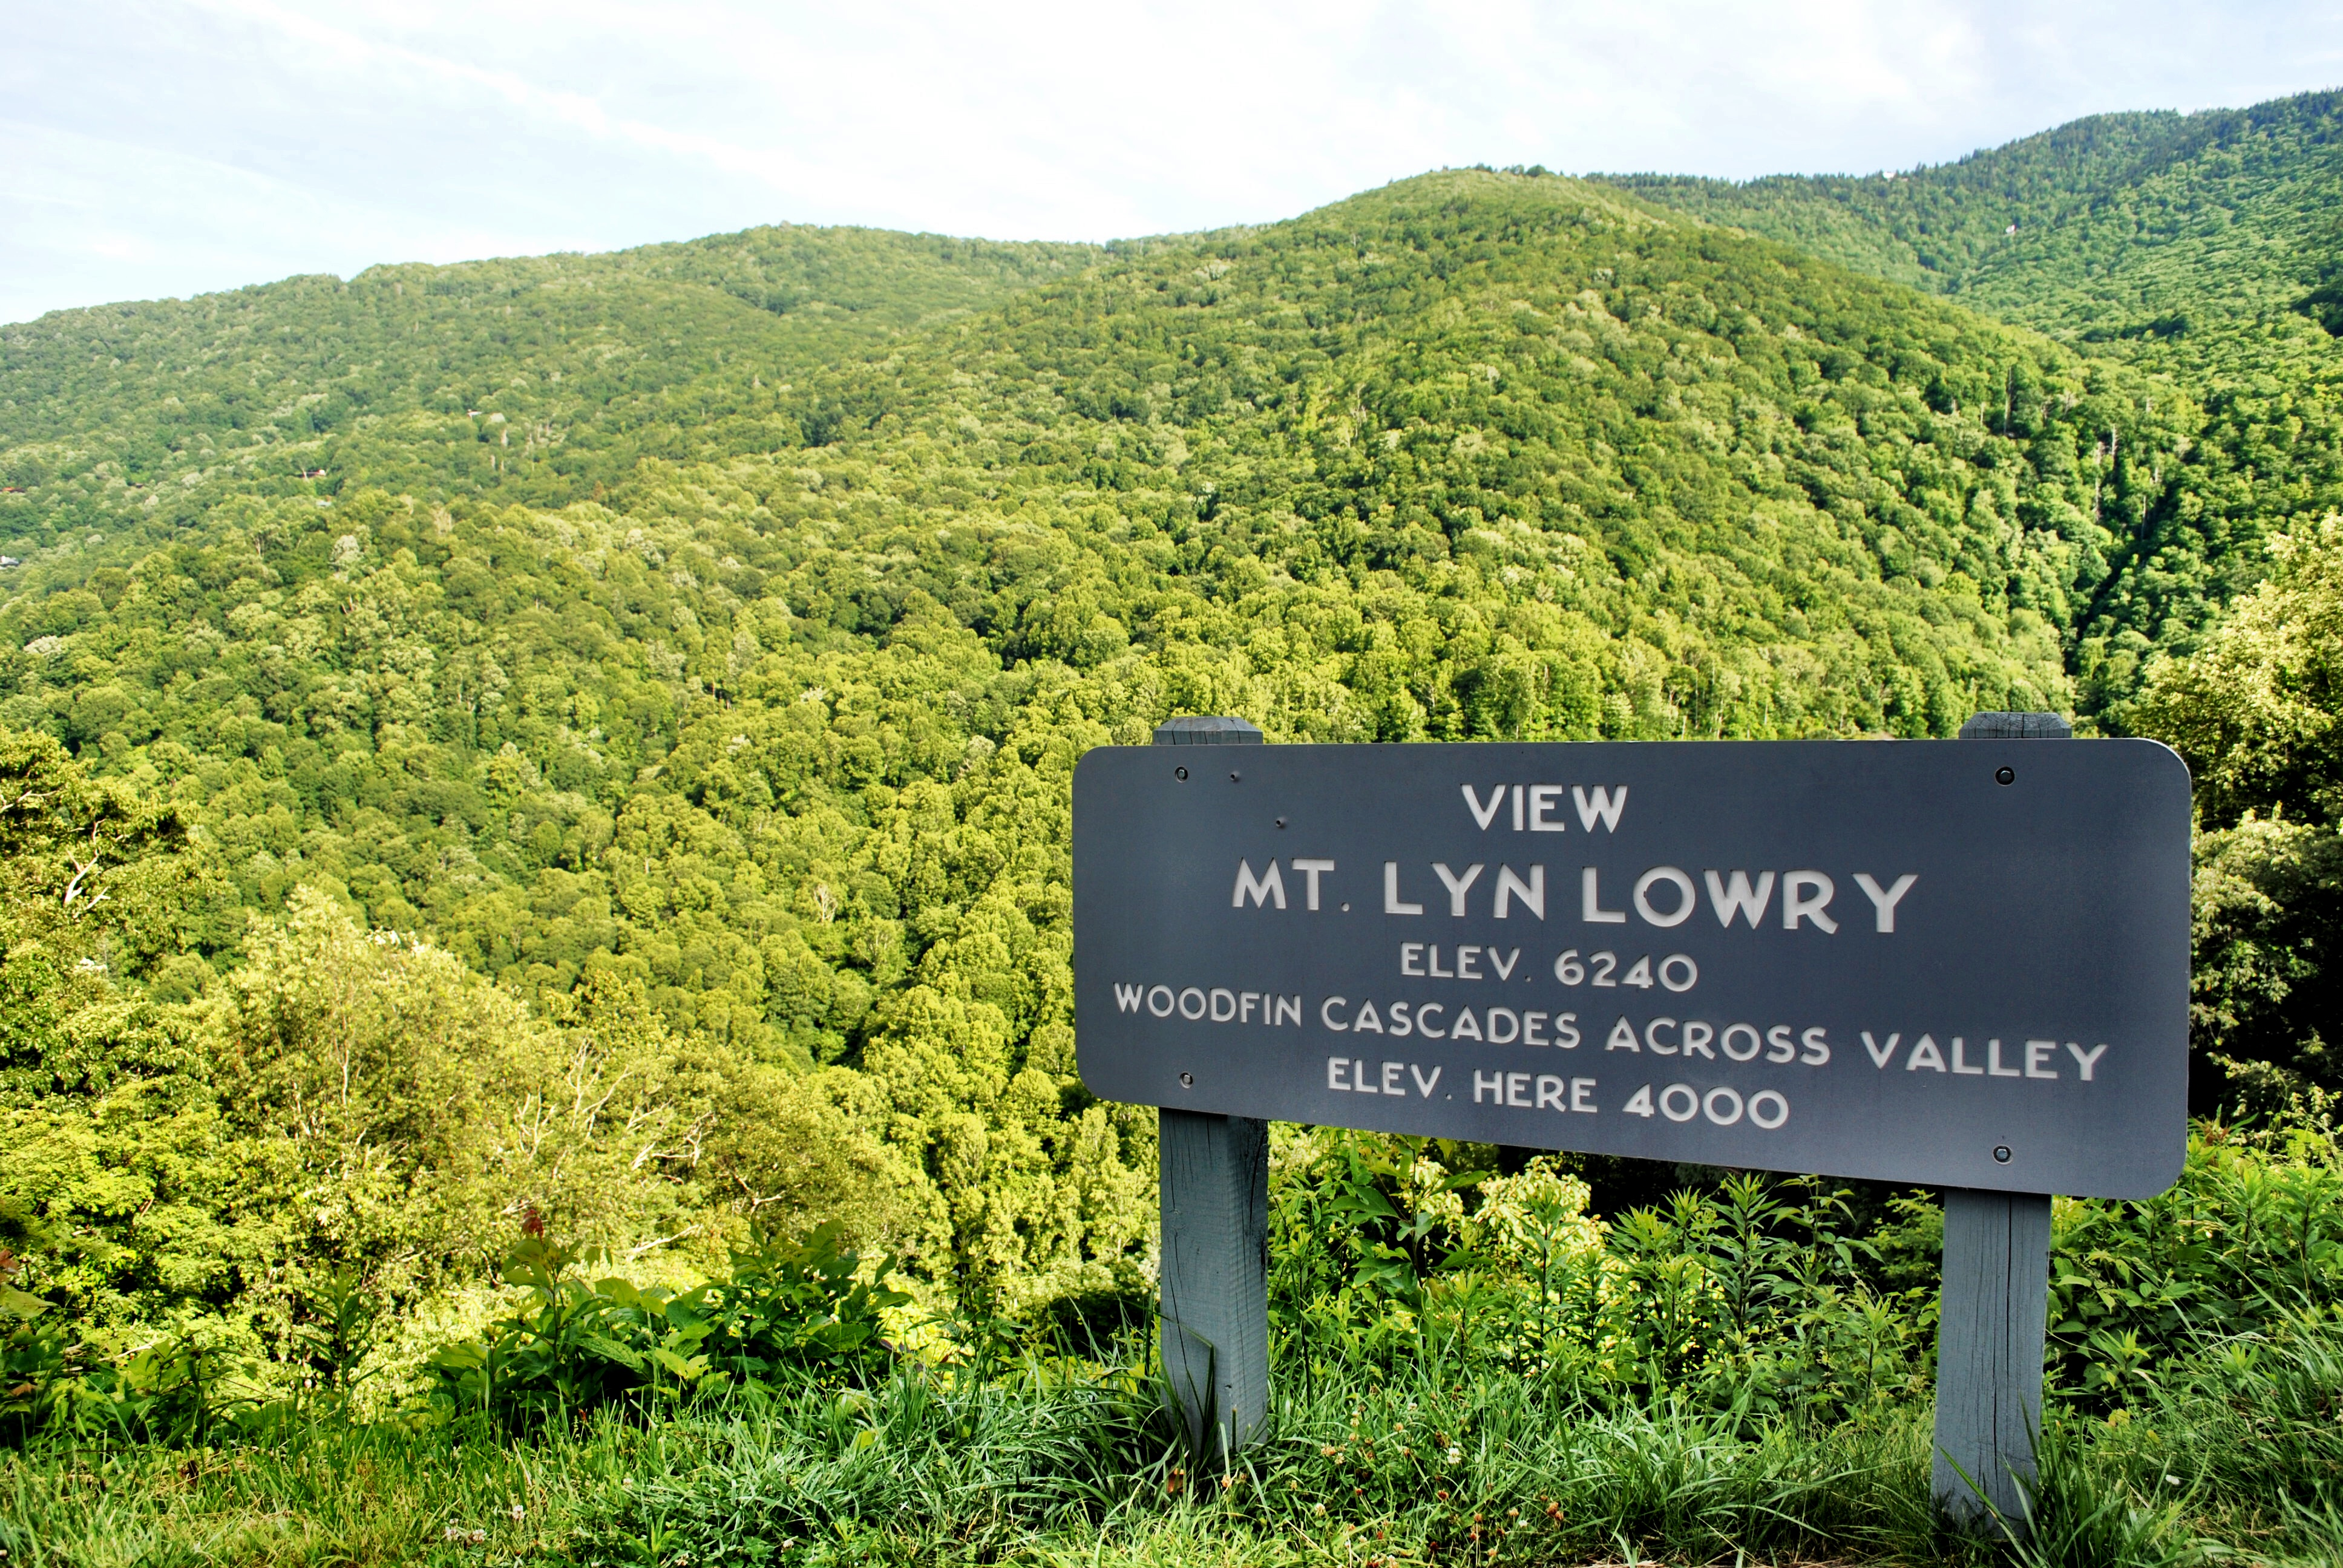 North Carolina - Blue Ridge Parkway - Mt Lyn Lowry Overlook